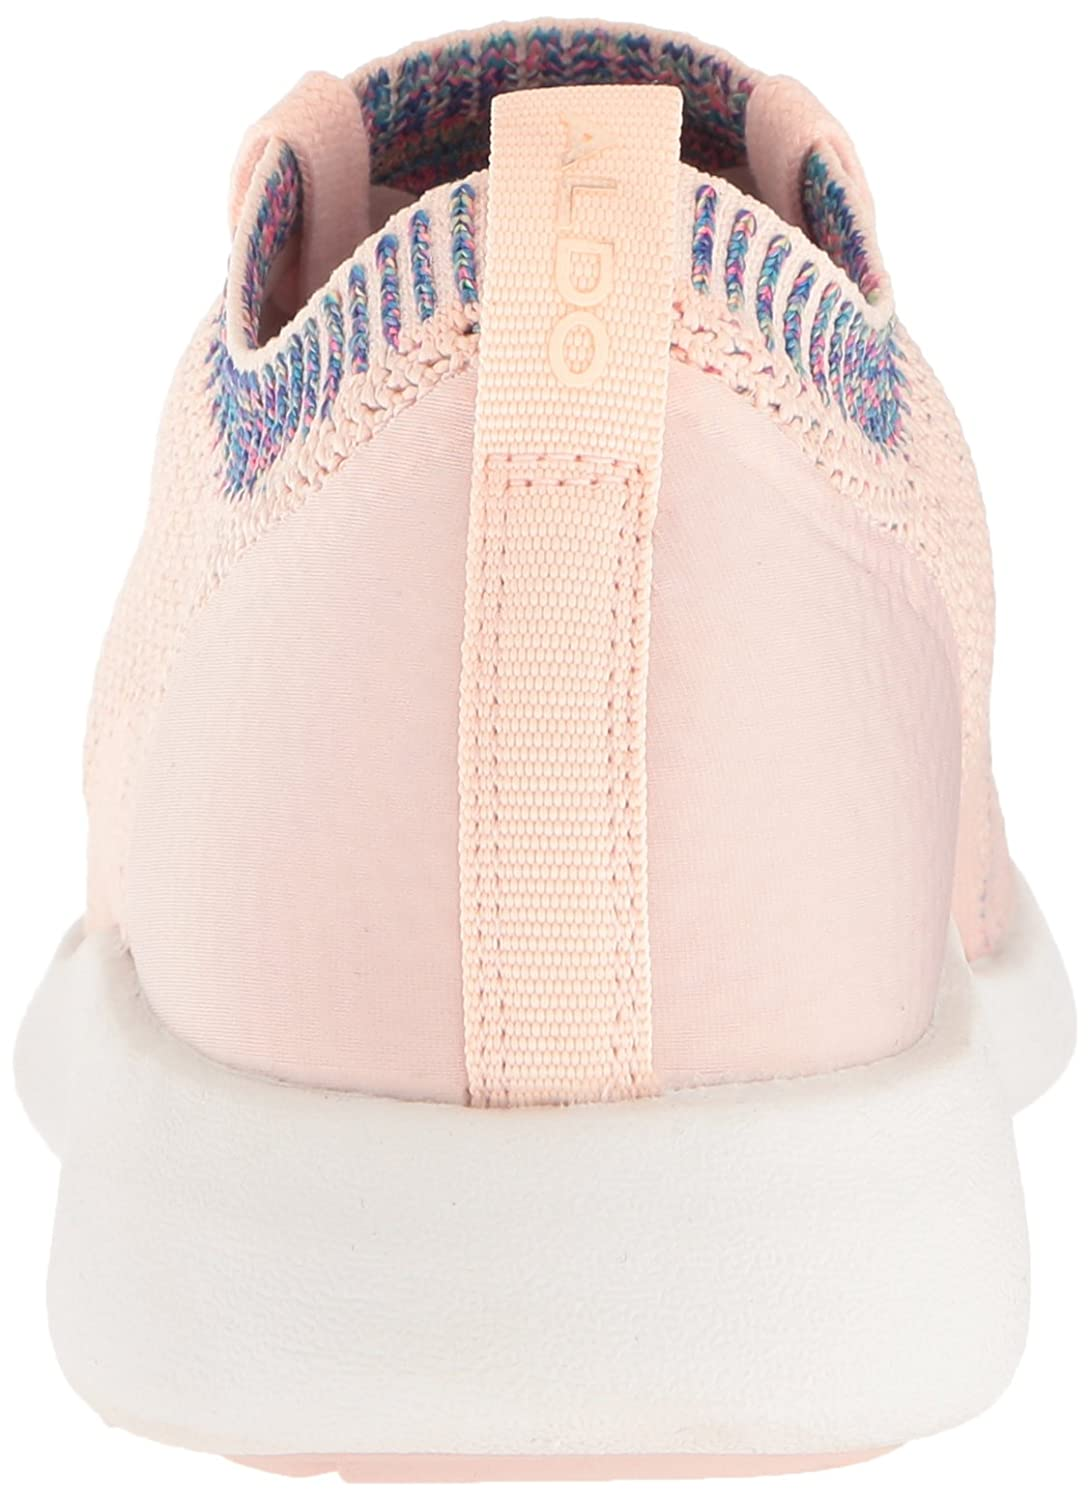 ALDO 8.5 Women's Portorford Sneaker B0791S2PS3 8.5 ALDO B(M) US|Pink Miscellaneous 60d049